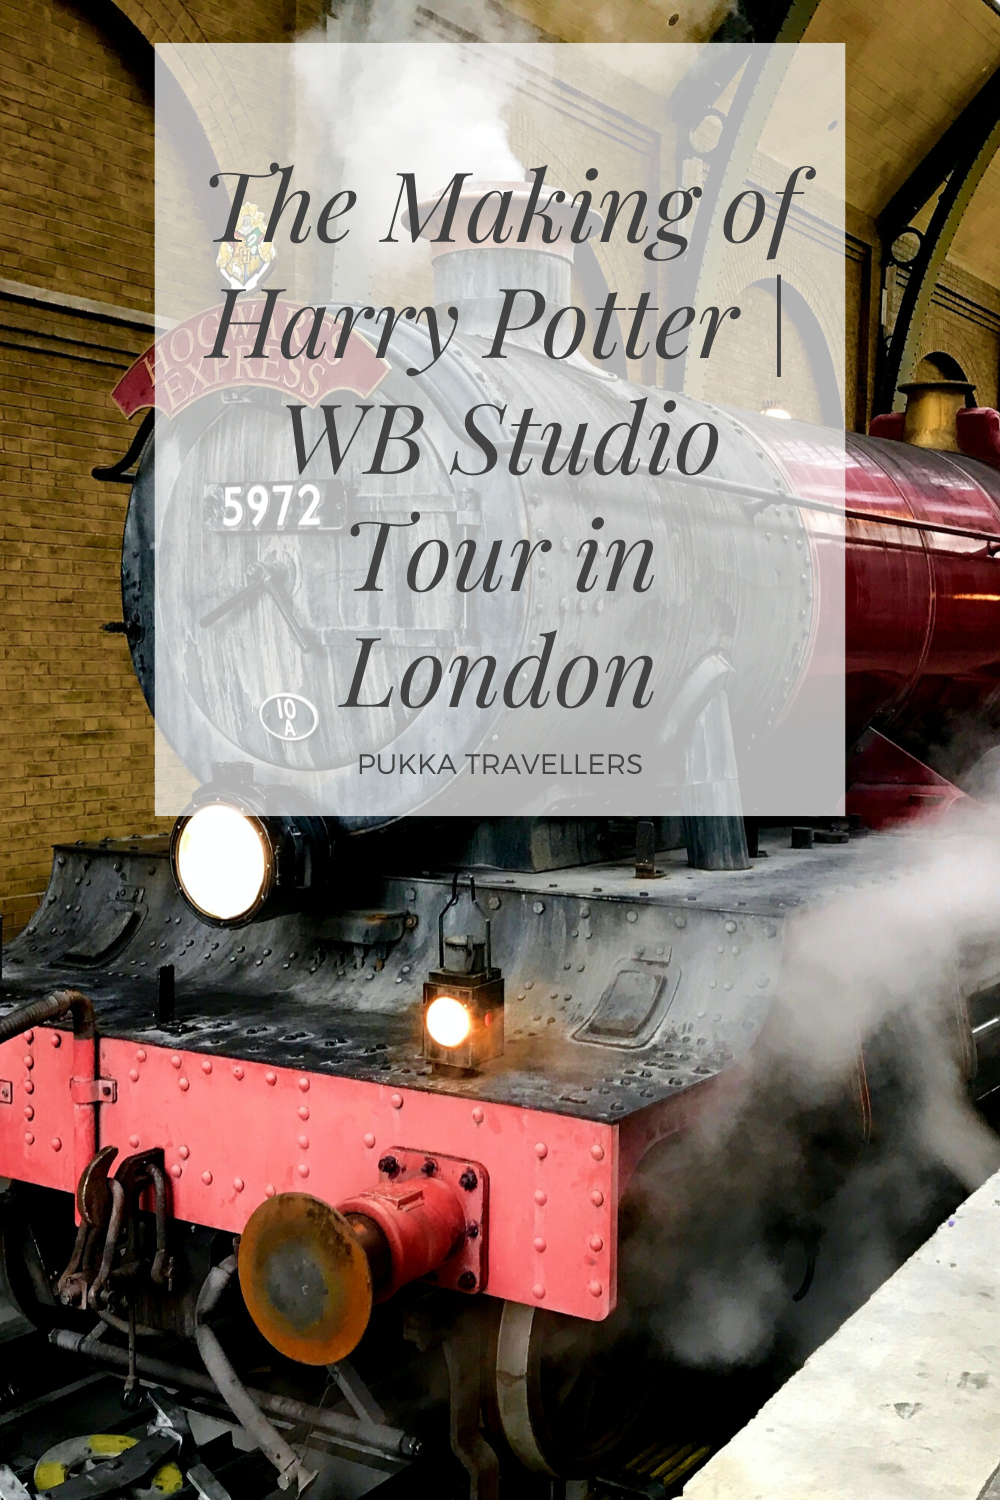 ed2adfb23c8ff4dfab36c2e8e78ab472 - How Do I Get To Harry Potter World From London By Train